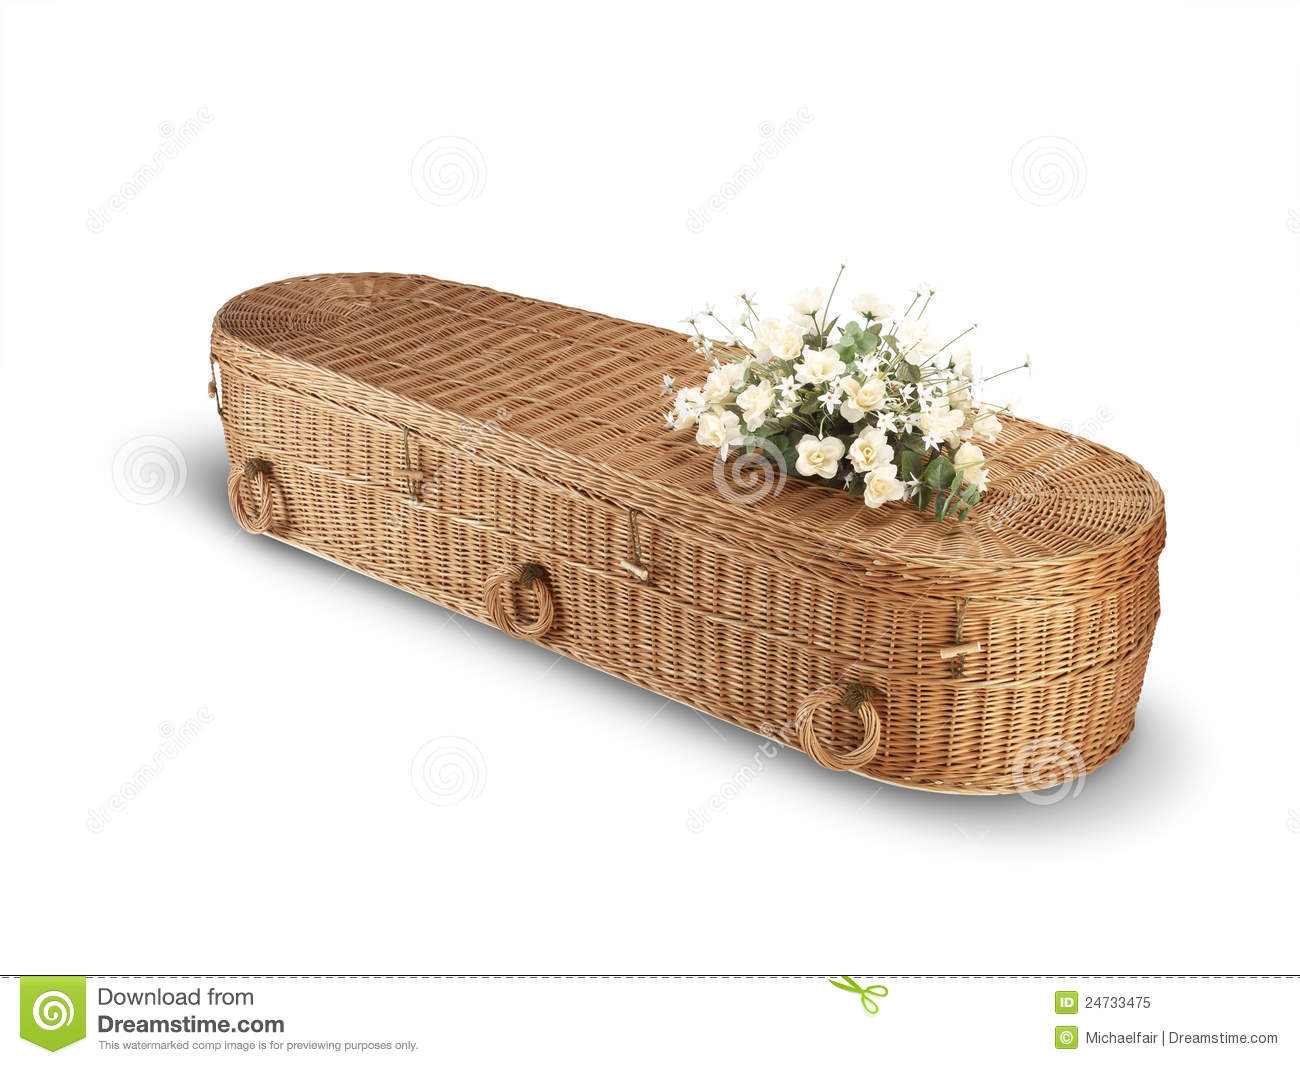 Wicker bio-degradable eco coffin isolated path